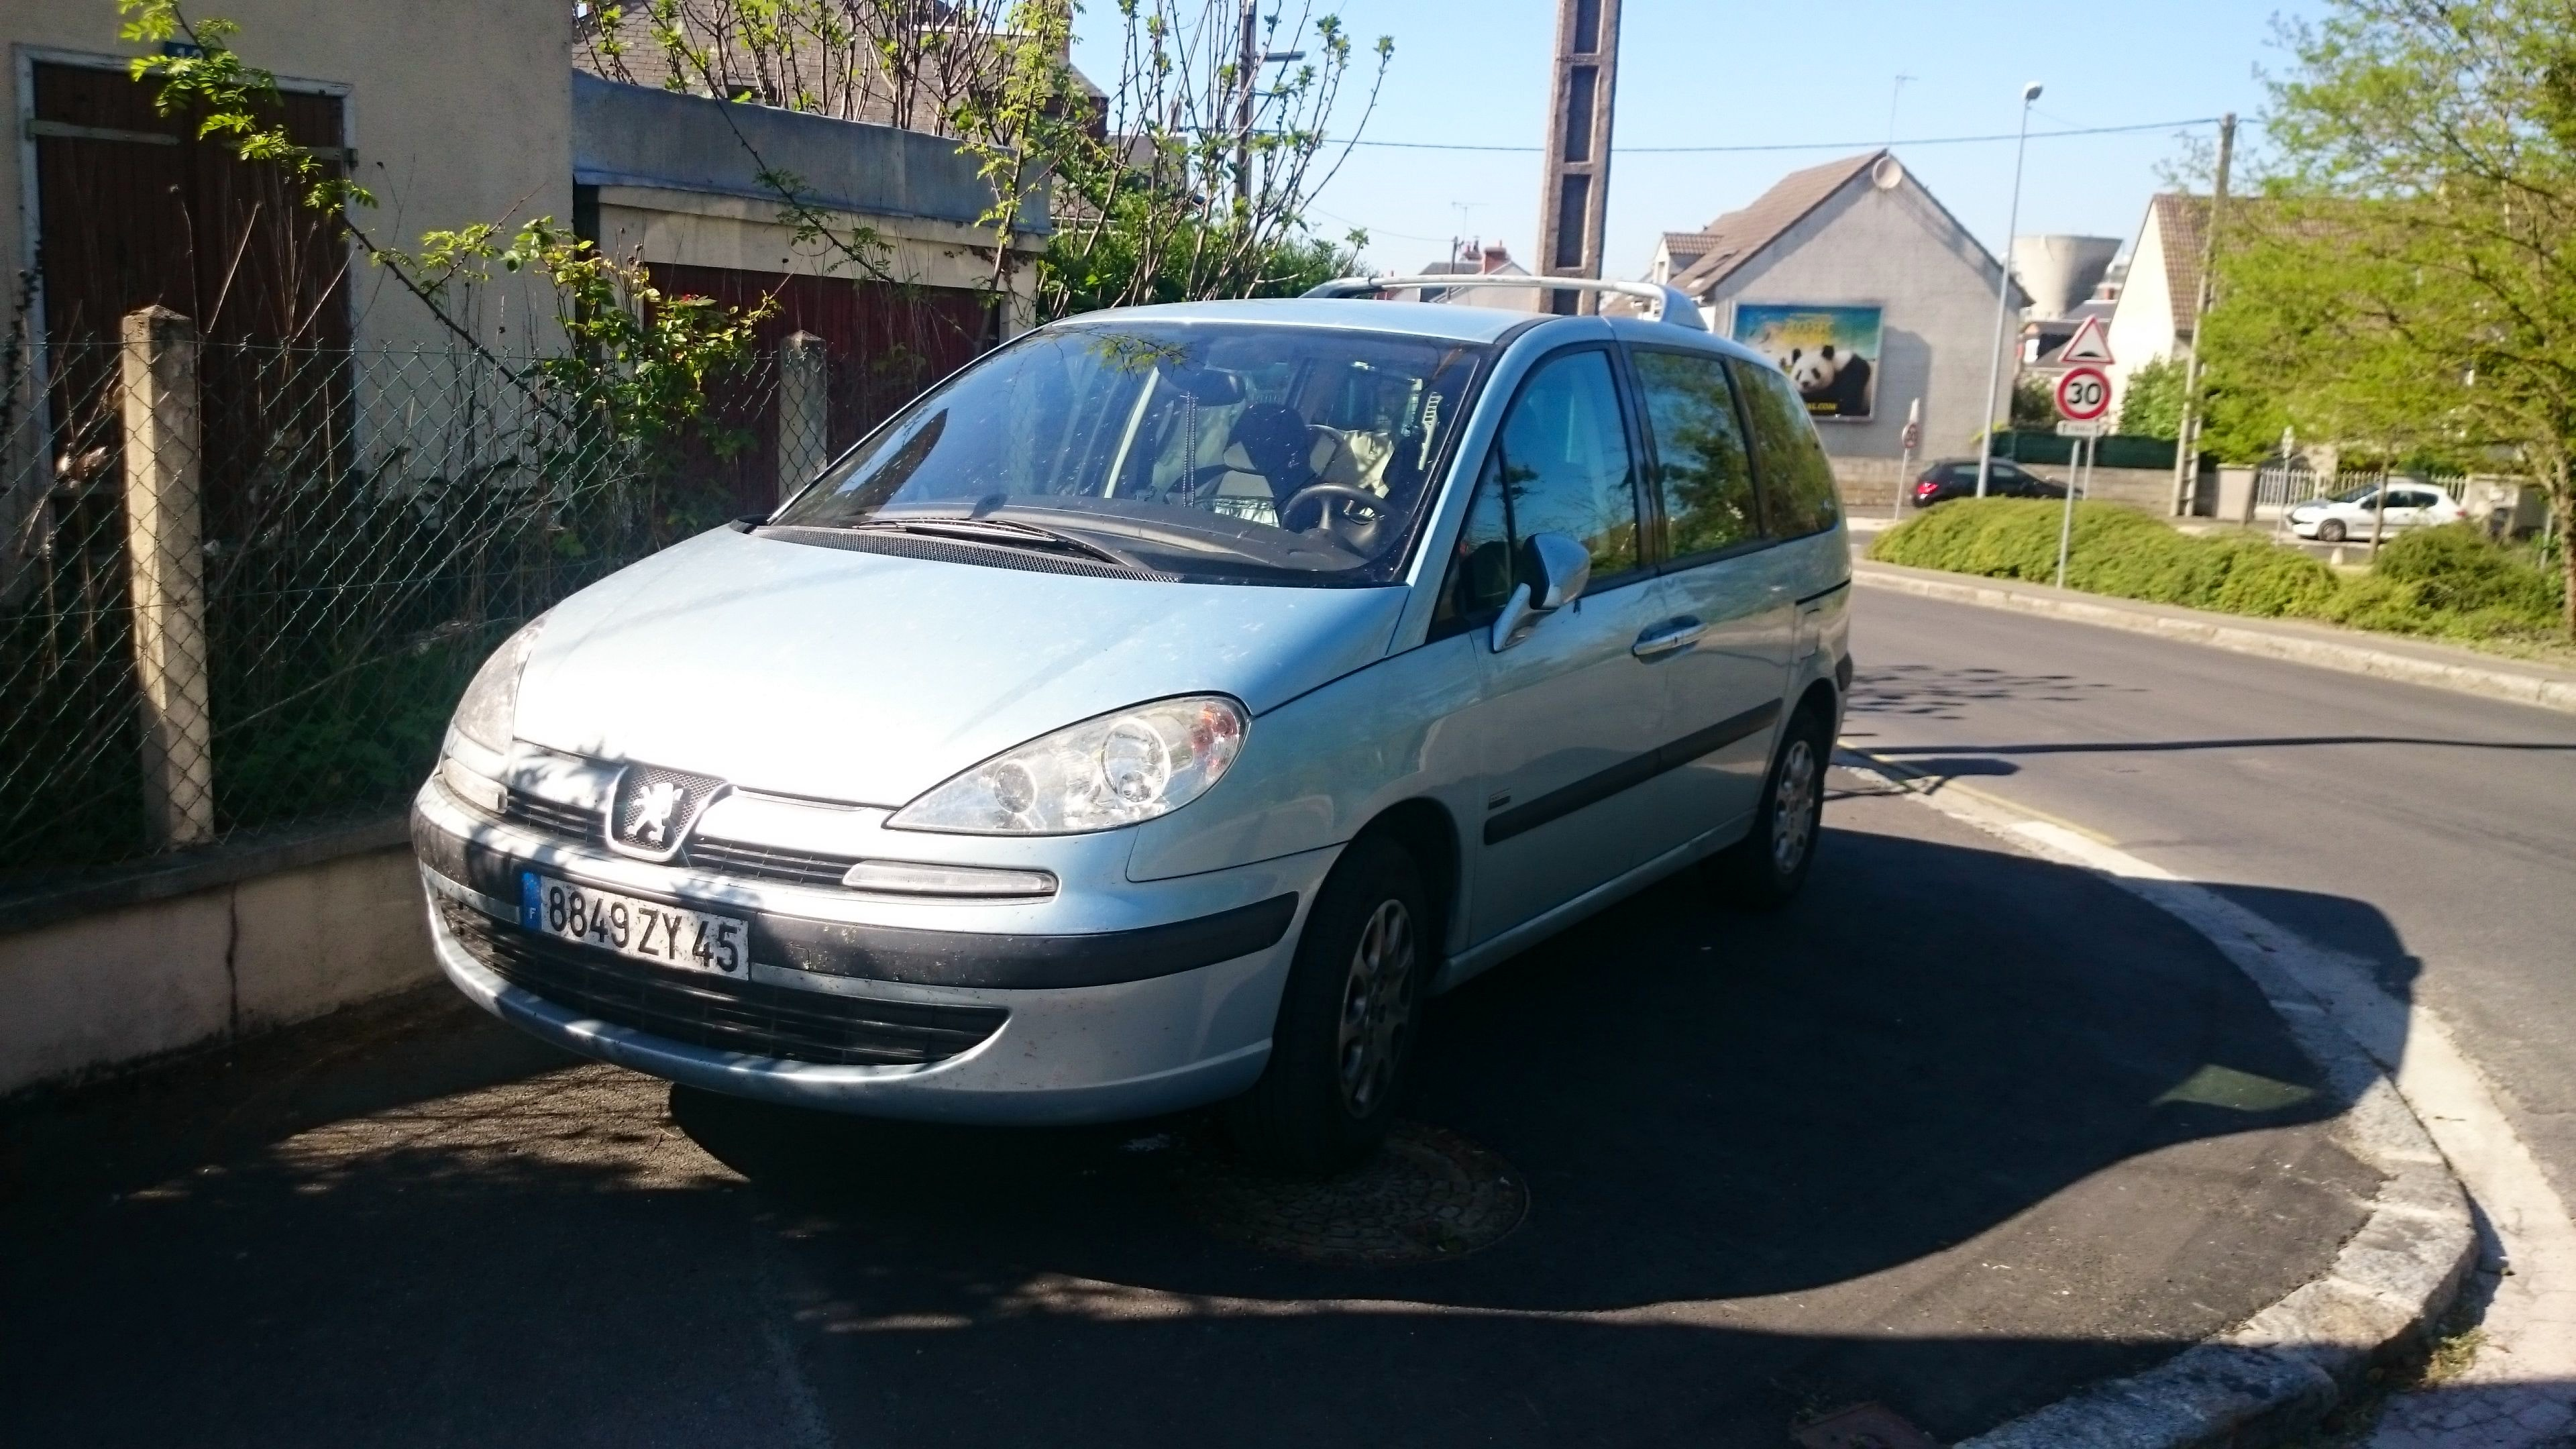 Peugeot  807 Hdi , 2005, Diesel, 7 places